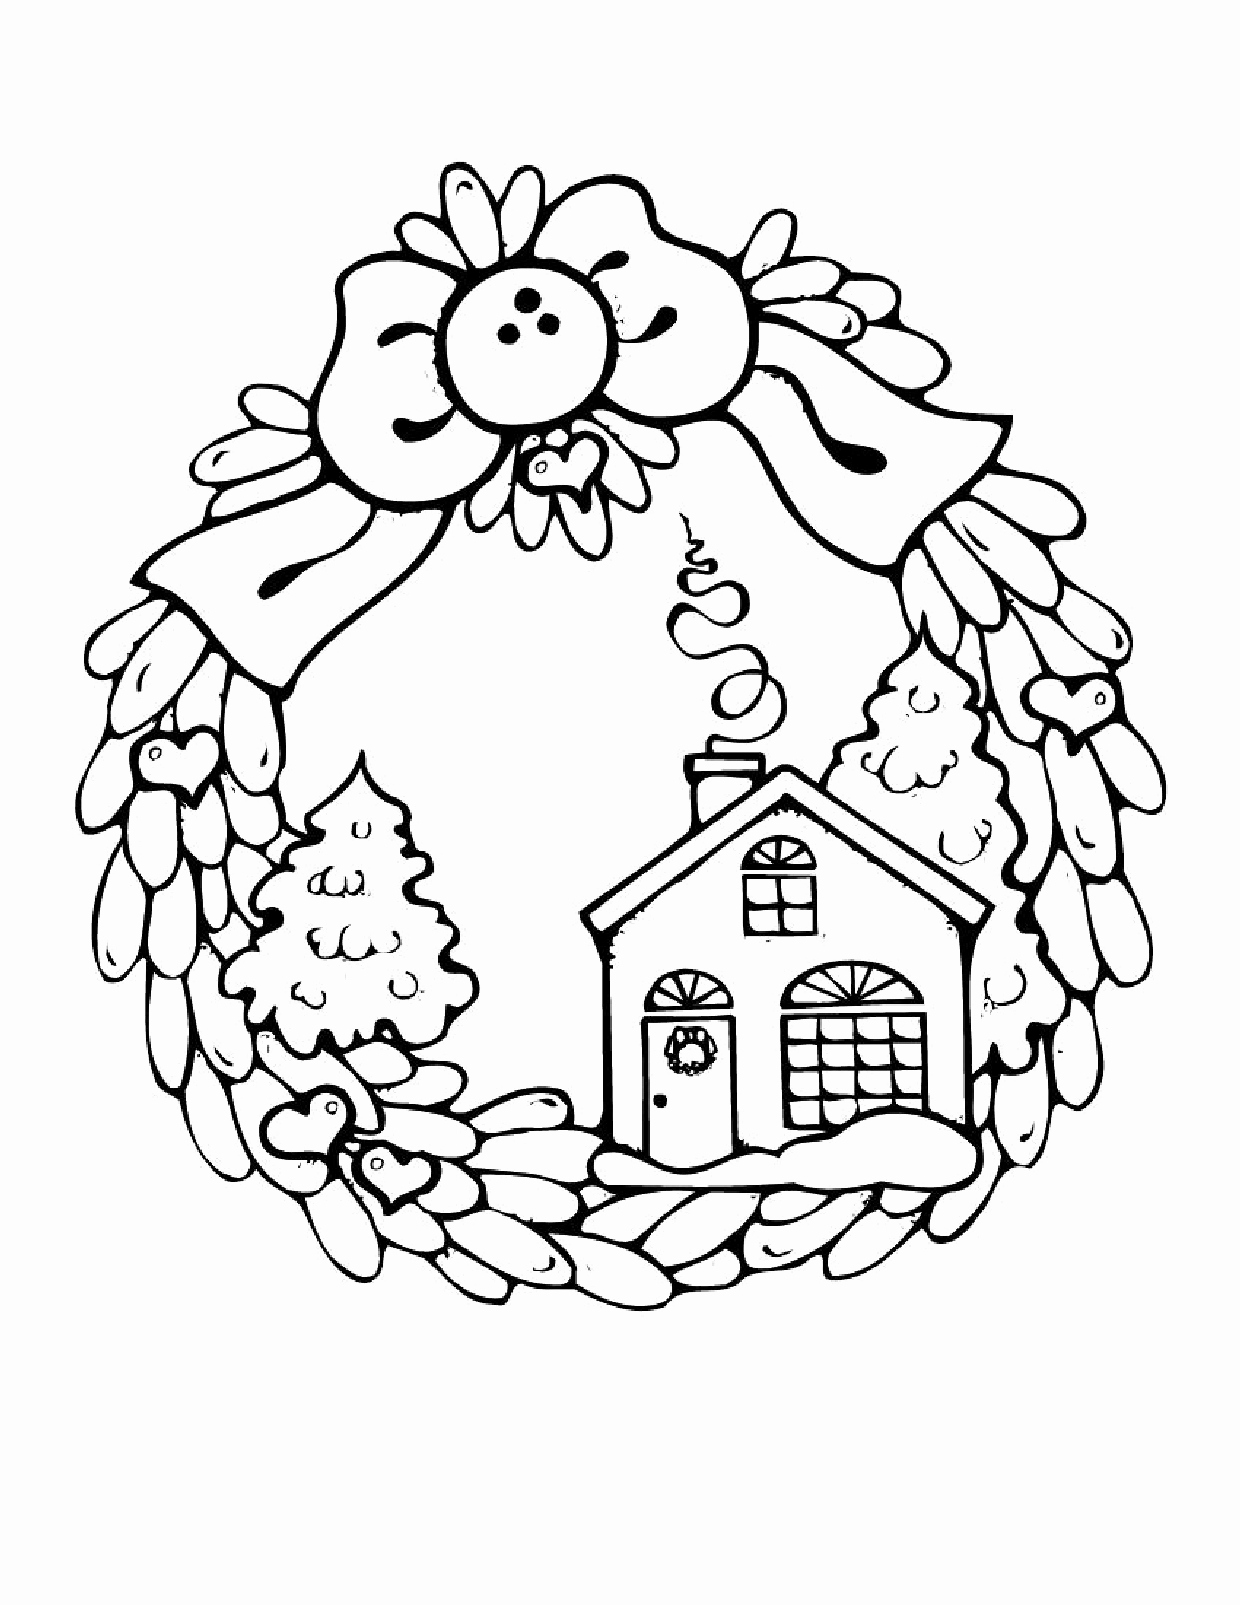 1240x1605 Christmas Coloring Sheets To Print For Free Awesome Fancy